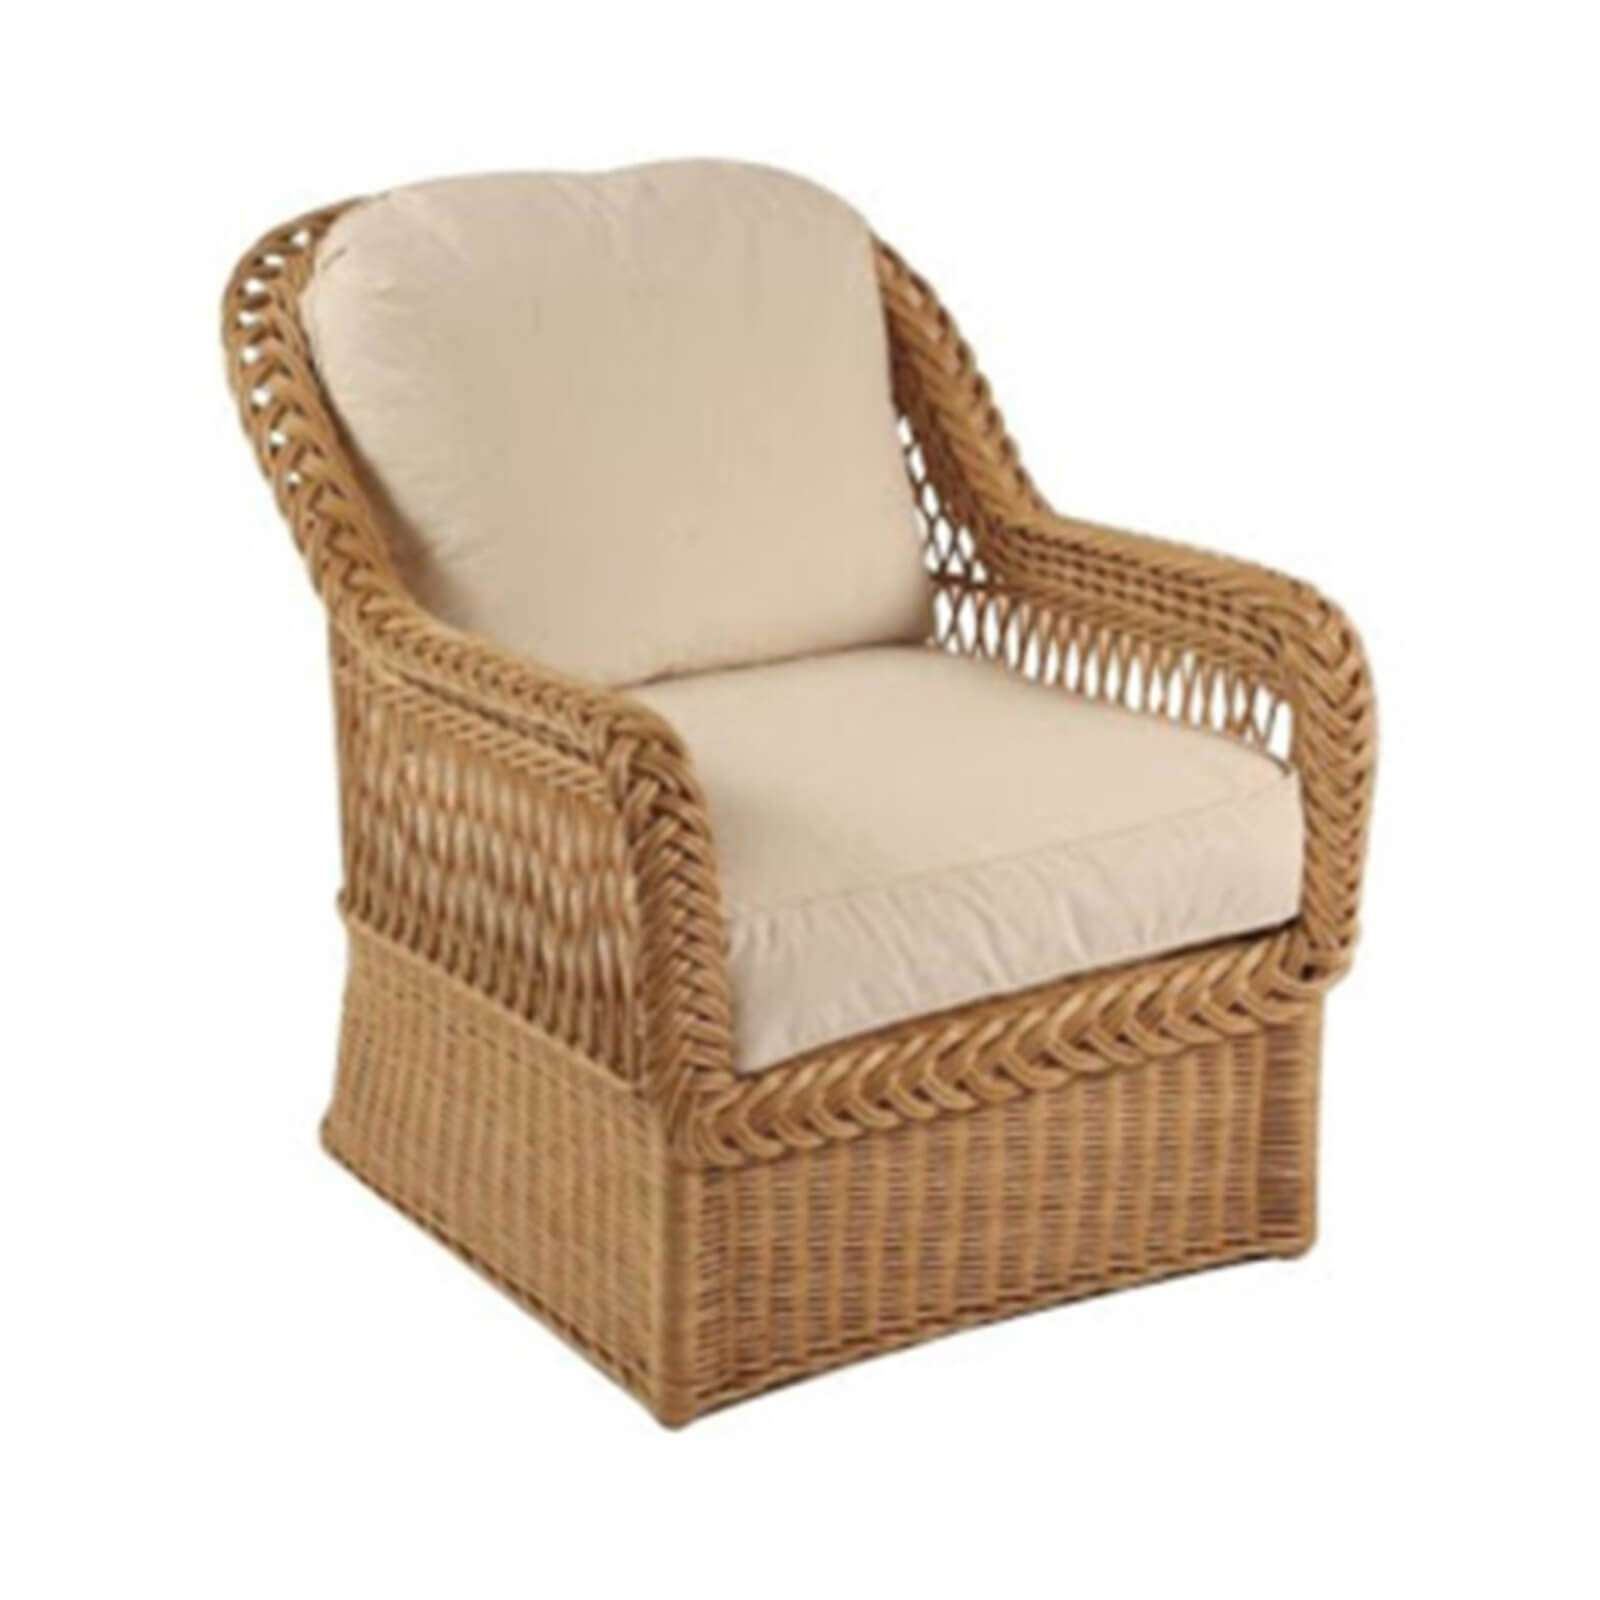 LAKE HOUSE WICKER CLUB CHAIR 11 - STUART MEMBERY HOME COLLECTION